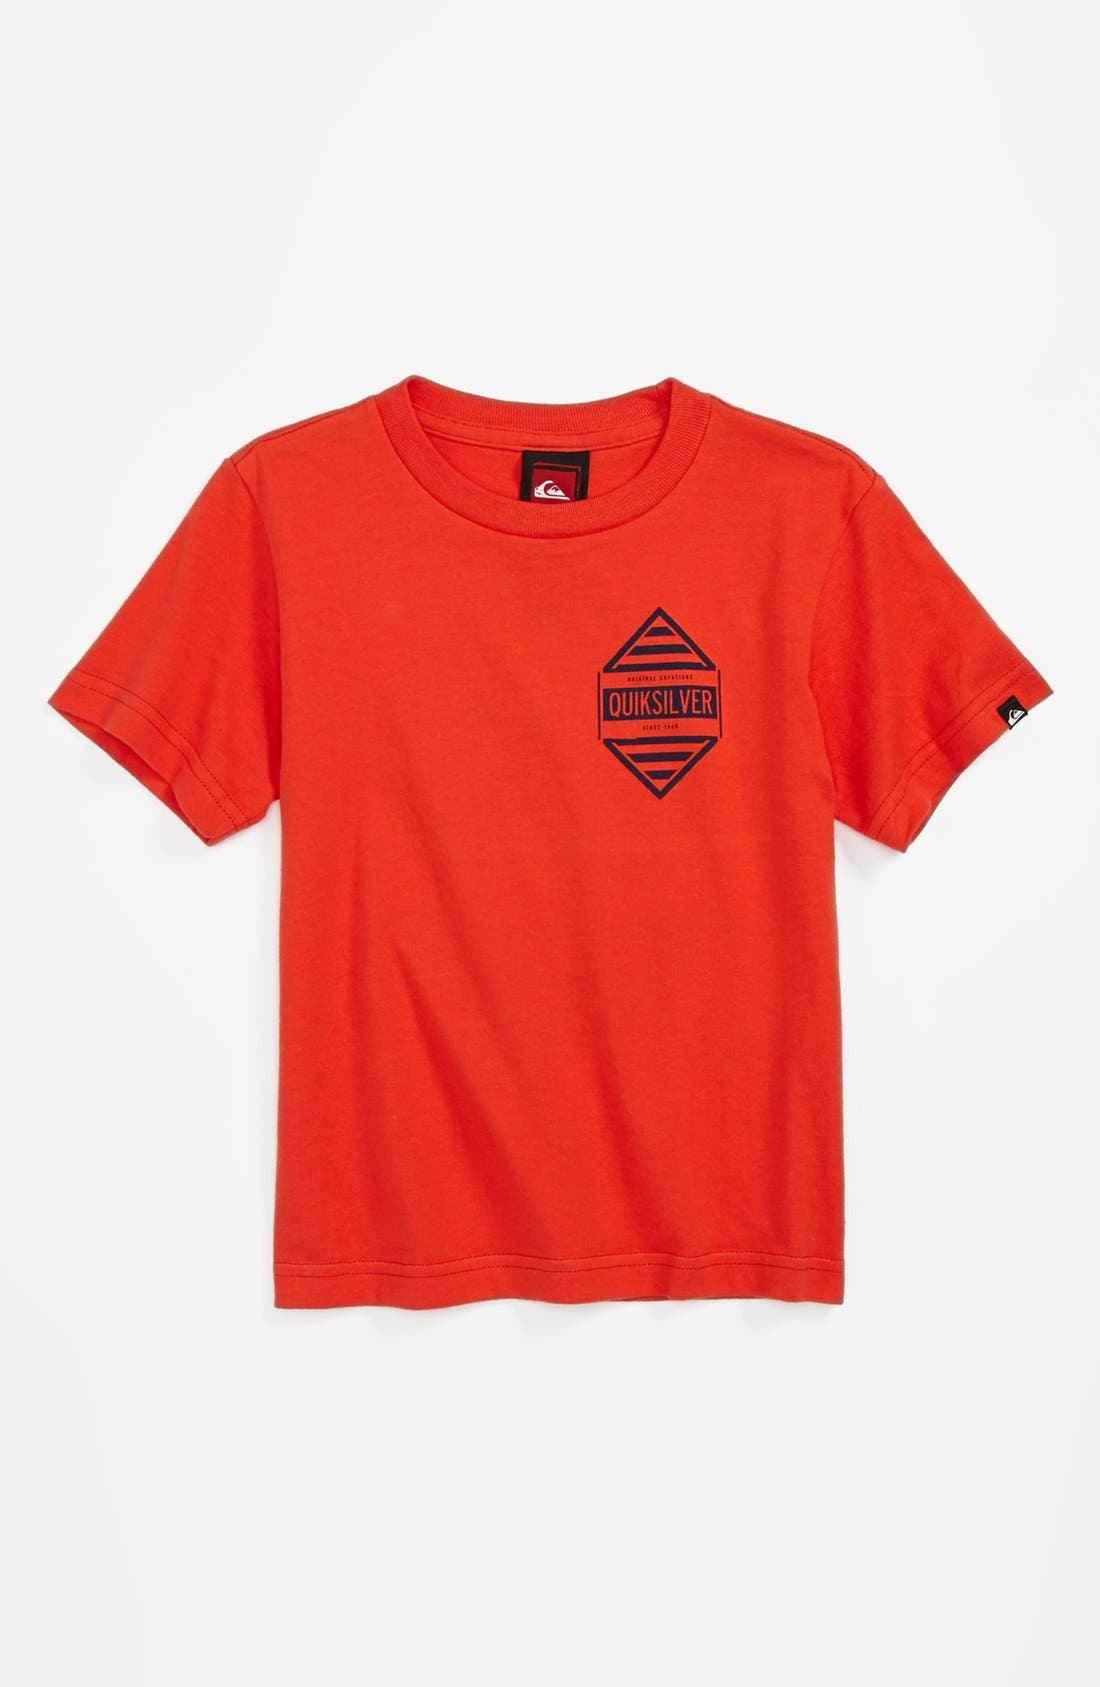 Main Image - Quiksilver 'Answer' T-Shirt (Toddler Boys)